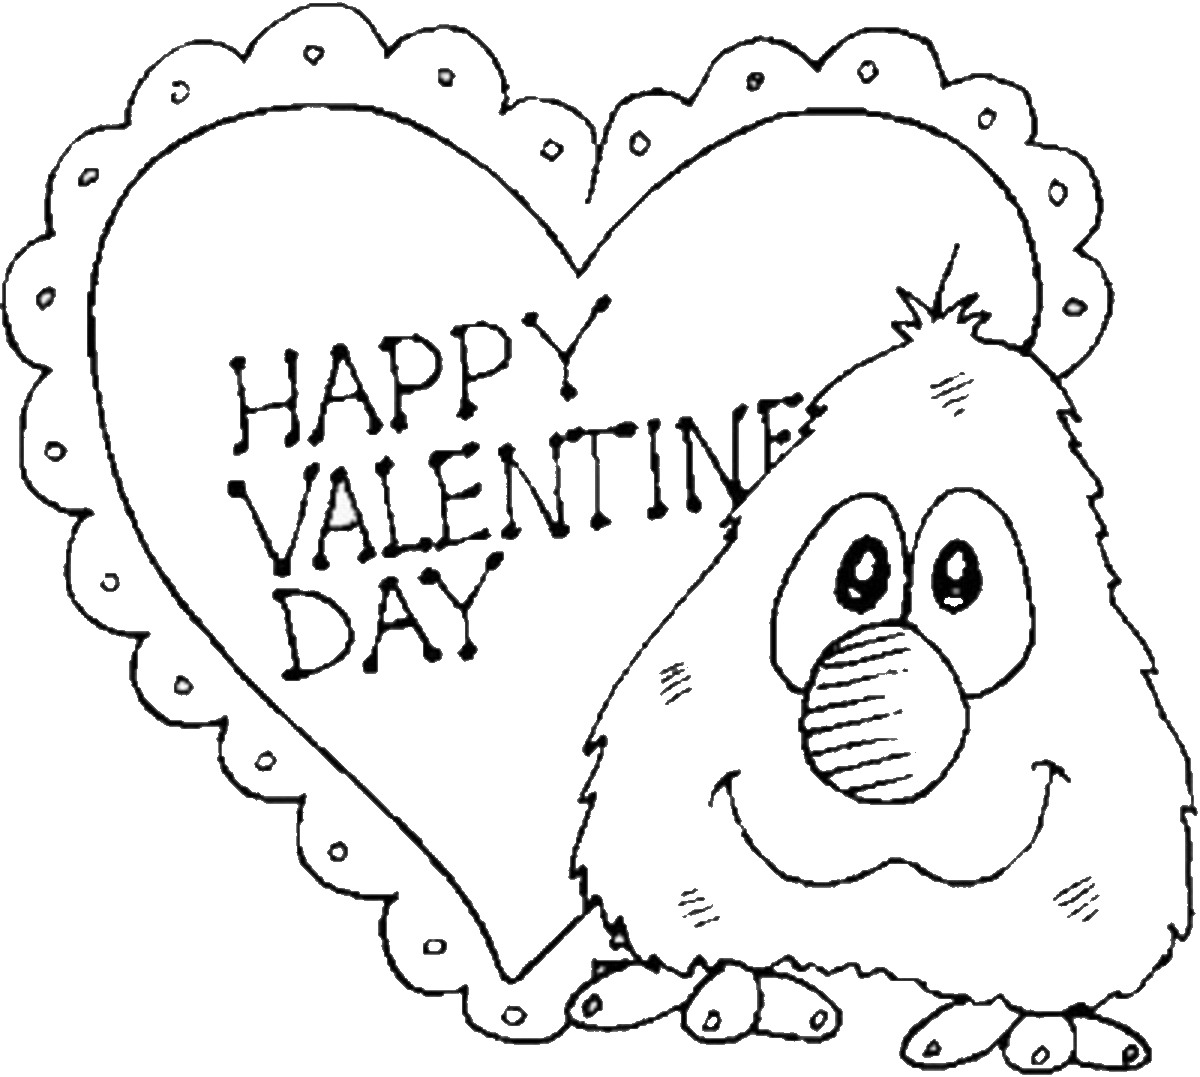 valentines coloring pages printable valentine coloring pages best coloring pages for kids printable coloring valentines pages